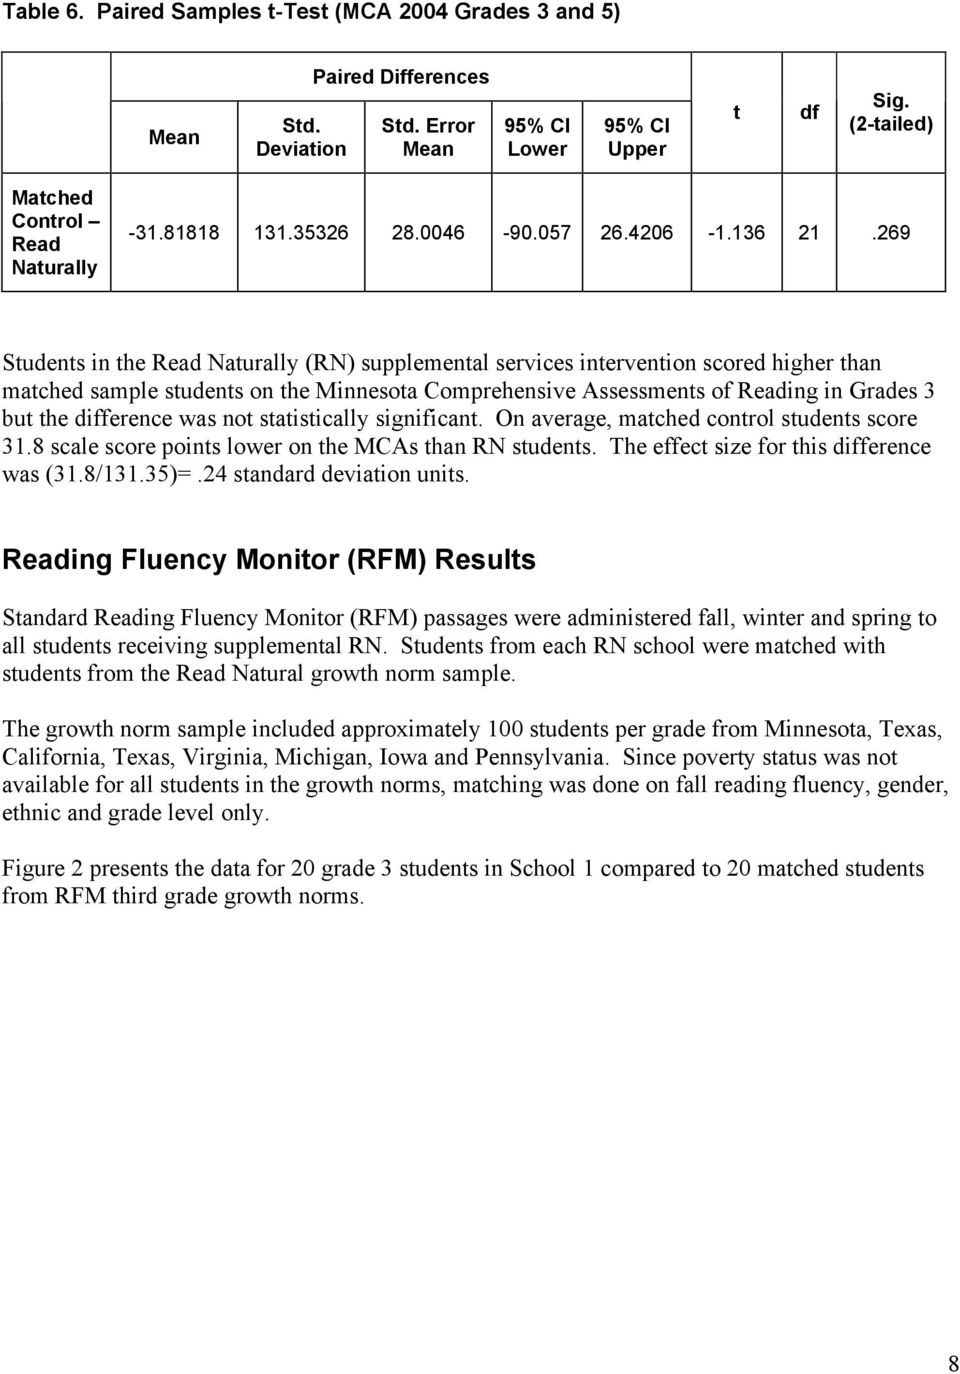 269 Students in the Read Naturally (RN) supplemental services intervention scored higher than matched sample students on the Minnesota Comprehensive Assessments of Reading in Grades 3 but the